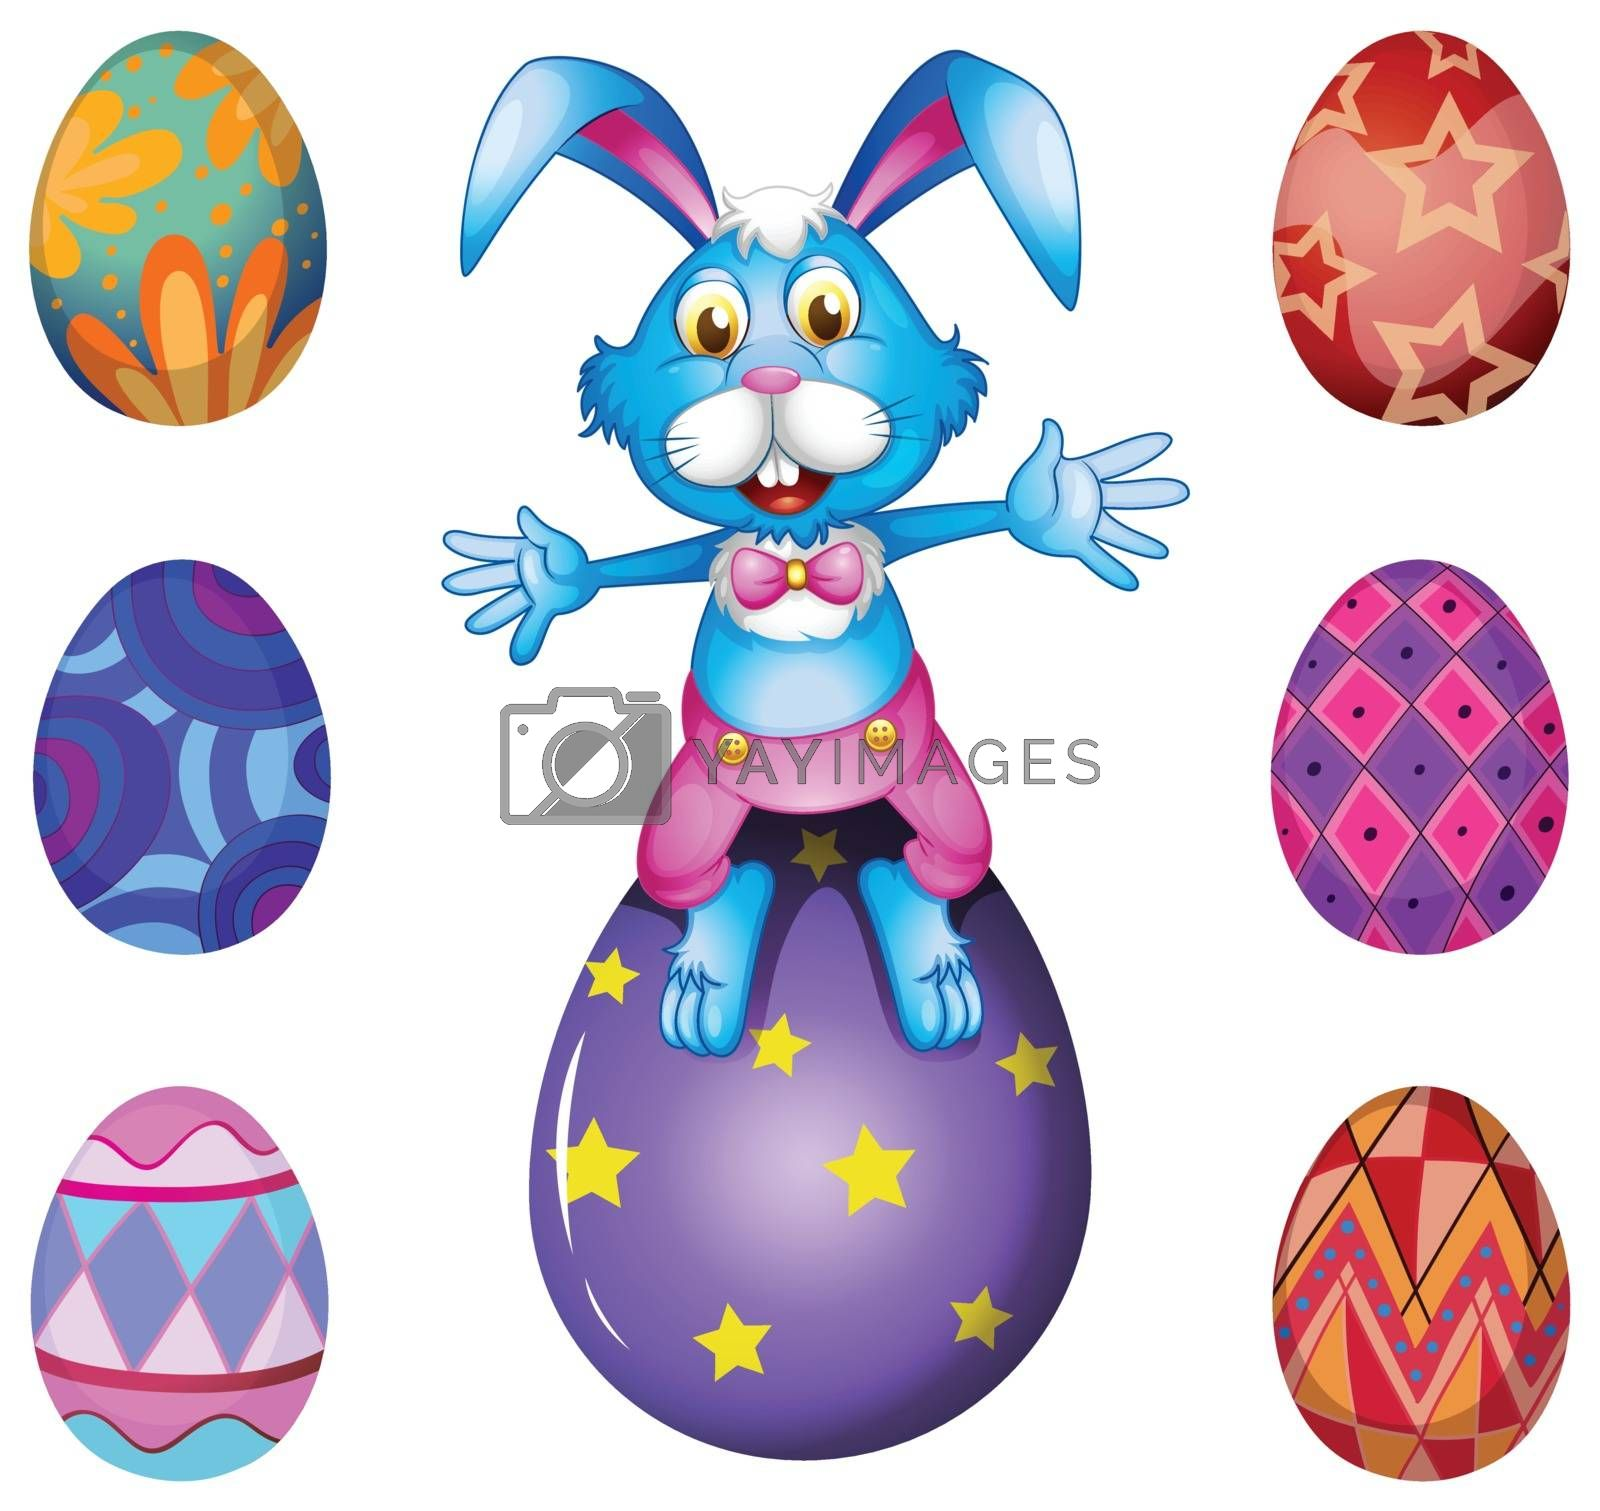 Illustration of a bunny above the Easter egg on a white background